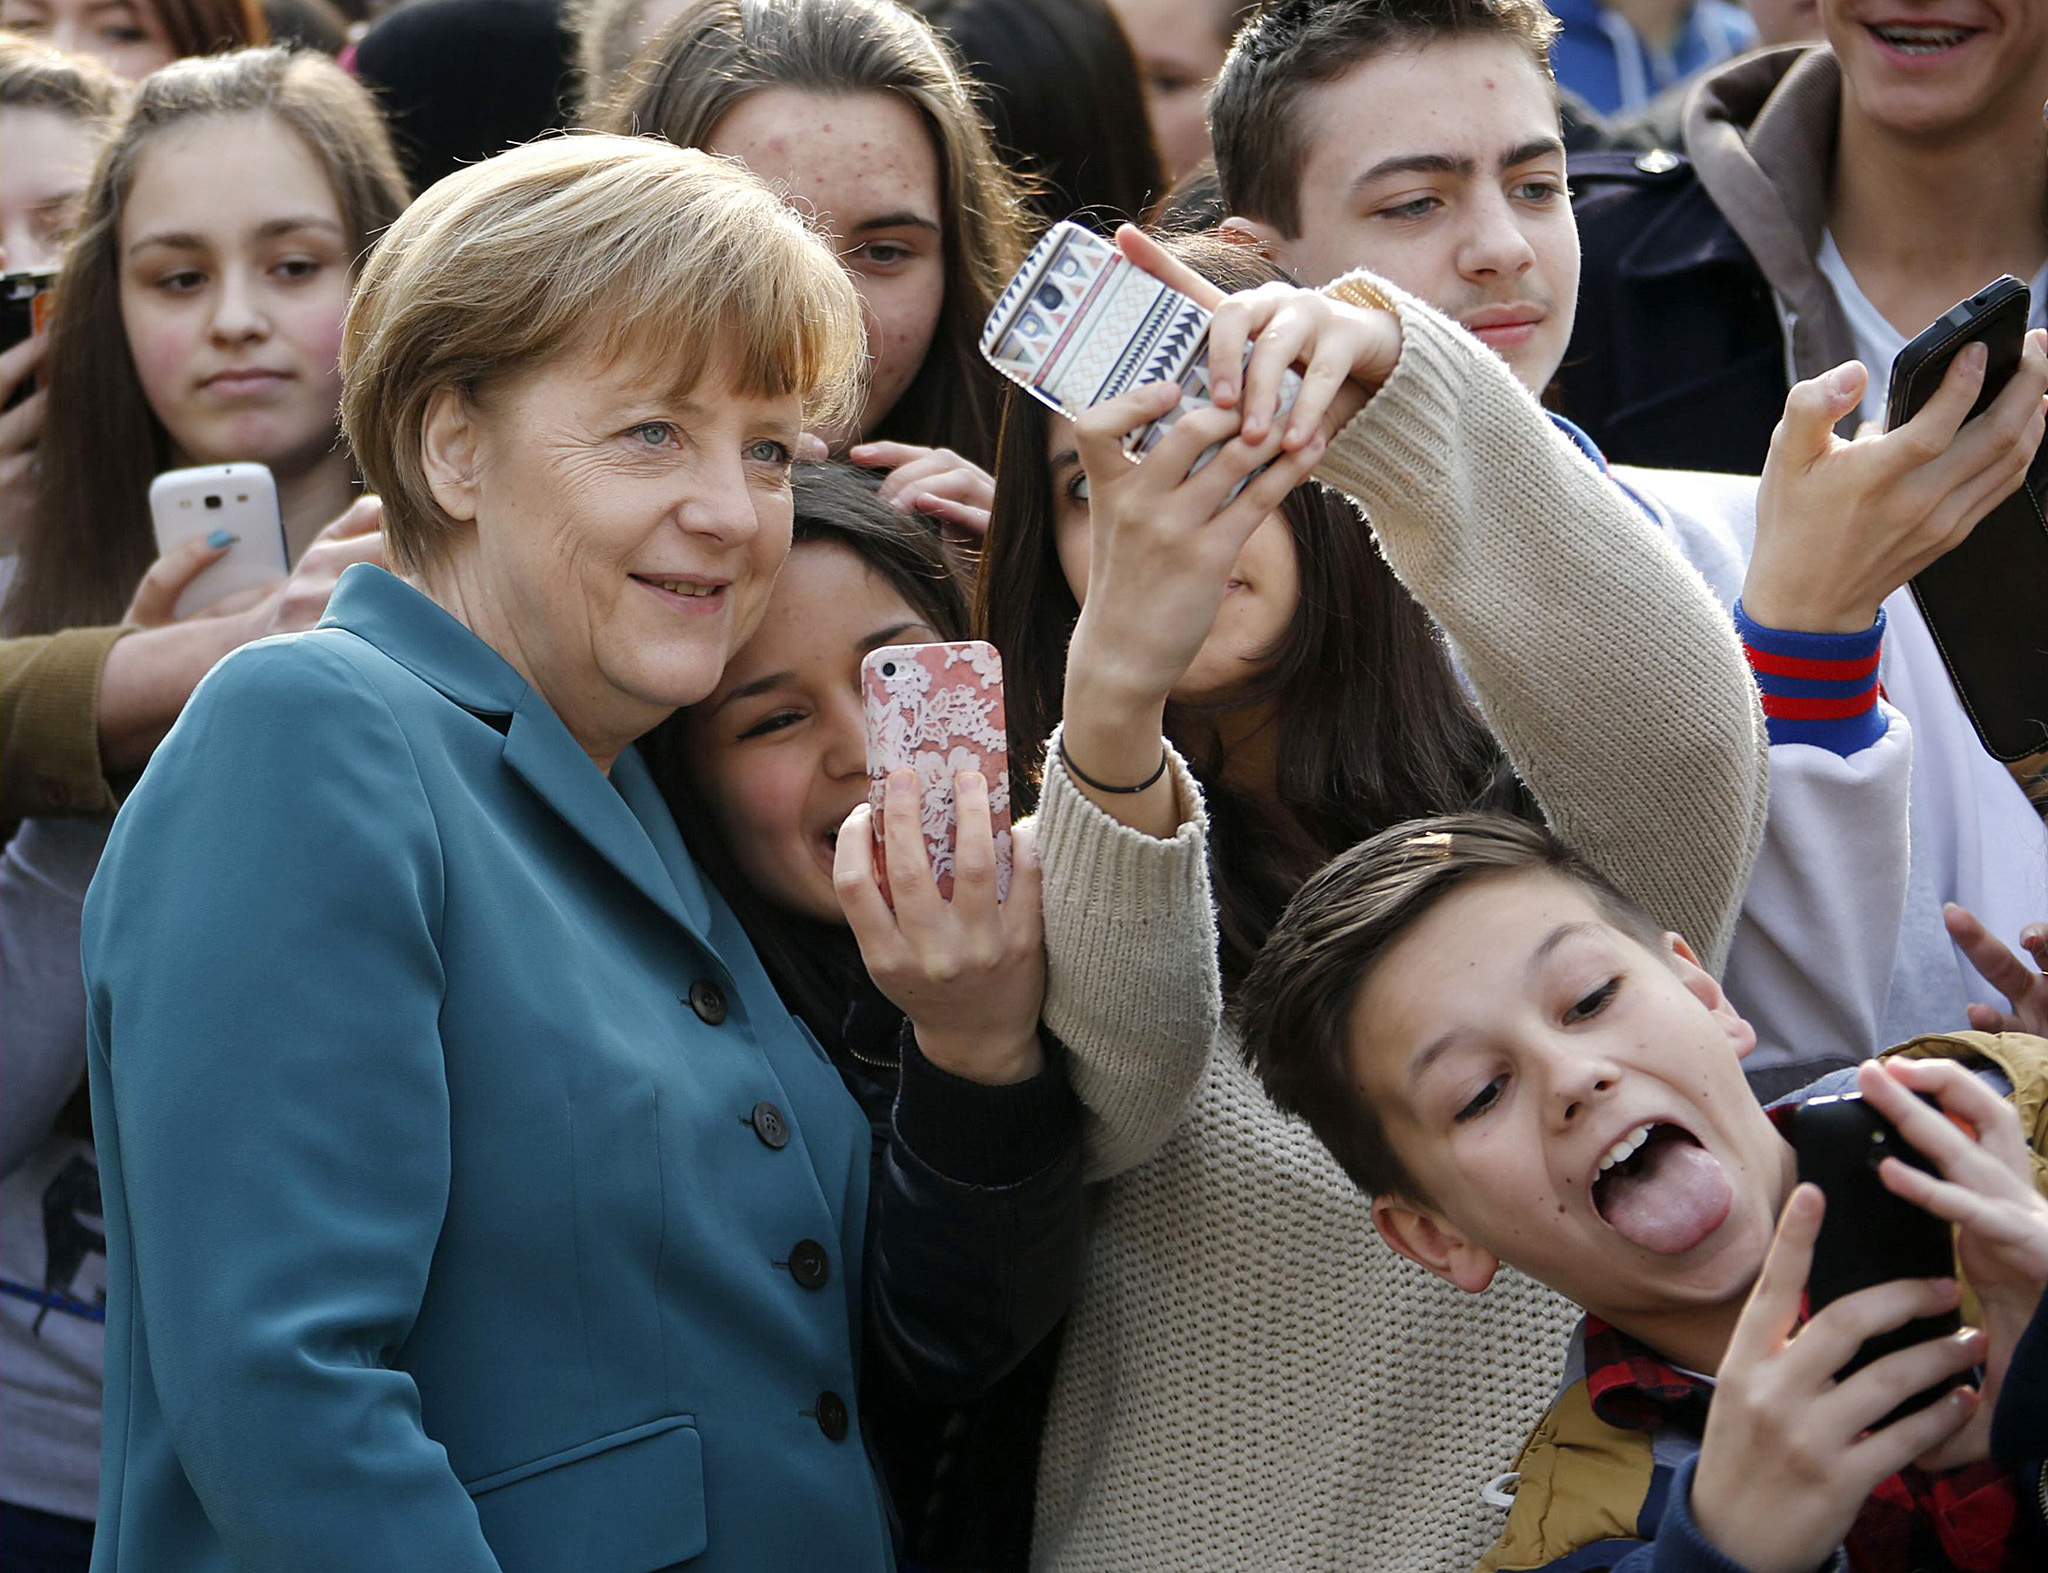 "REUTERS PICTURE HIGHLIGHT...ATTENTION EDITORS - REUTERS PICTURE HIGHLIGHT TRANSMITTED BY 0904 GMT ON MARCH 31, 2014    FAB01  Pupils take mobile phone 'selfies' with German Chancellor Angela Merkel, as she arrives for a visit at Robert-Jungk Europe high school as part of the Europe-Project Day, in Berlin.   REUTERS/Fabrizio Bensch     REUTERS NEWS PICTURES HAS NOW MADE IT EASIER TO FIND THE BEST PHOTOS FROM THE MOST IMPORTANT STORIES AND TOP STANDALONES EACH DAY. Search for ""TPX"" in the IPTC Supplemental Category field or ""IMAGES OF THE DAY"" in the Caption field and you will find a selection of 80-100 of our daily Top Pictures."